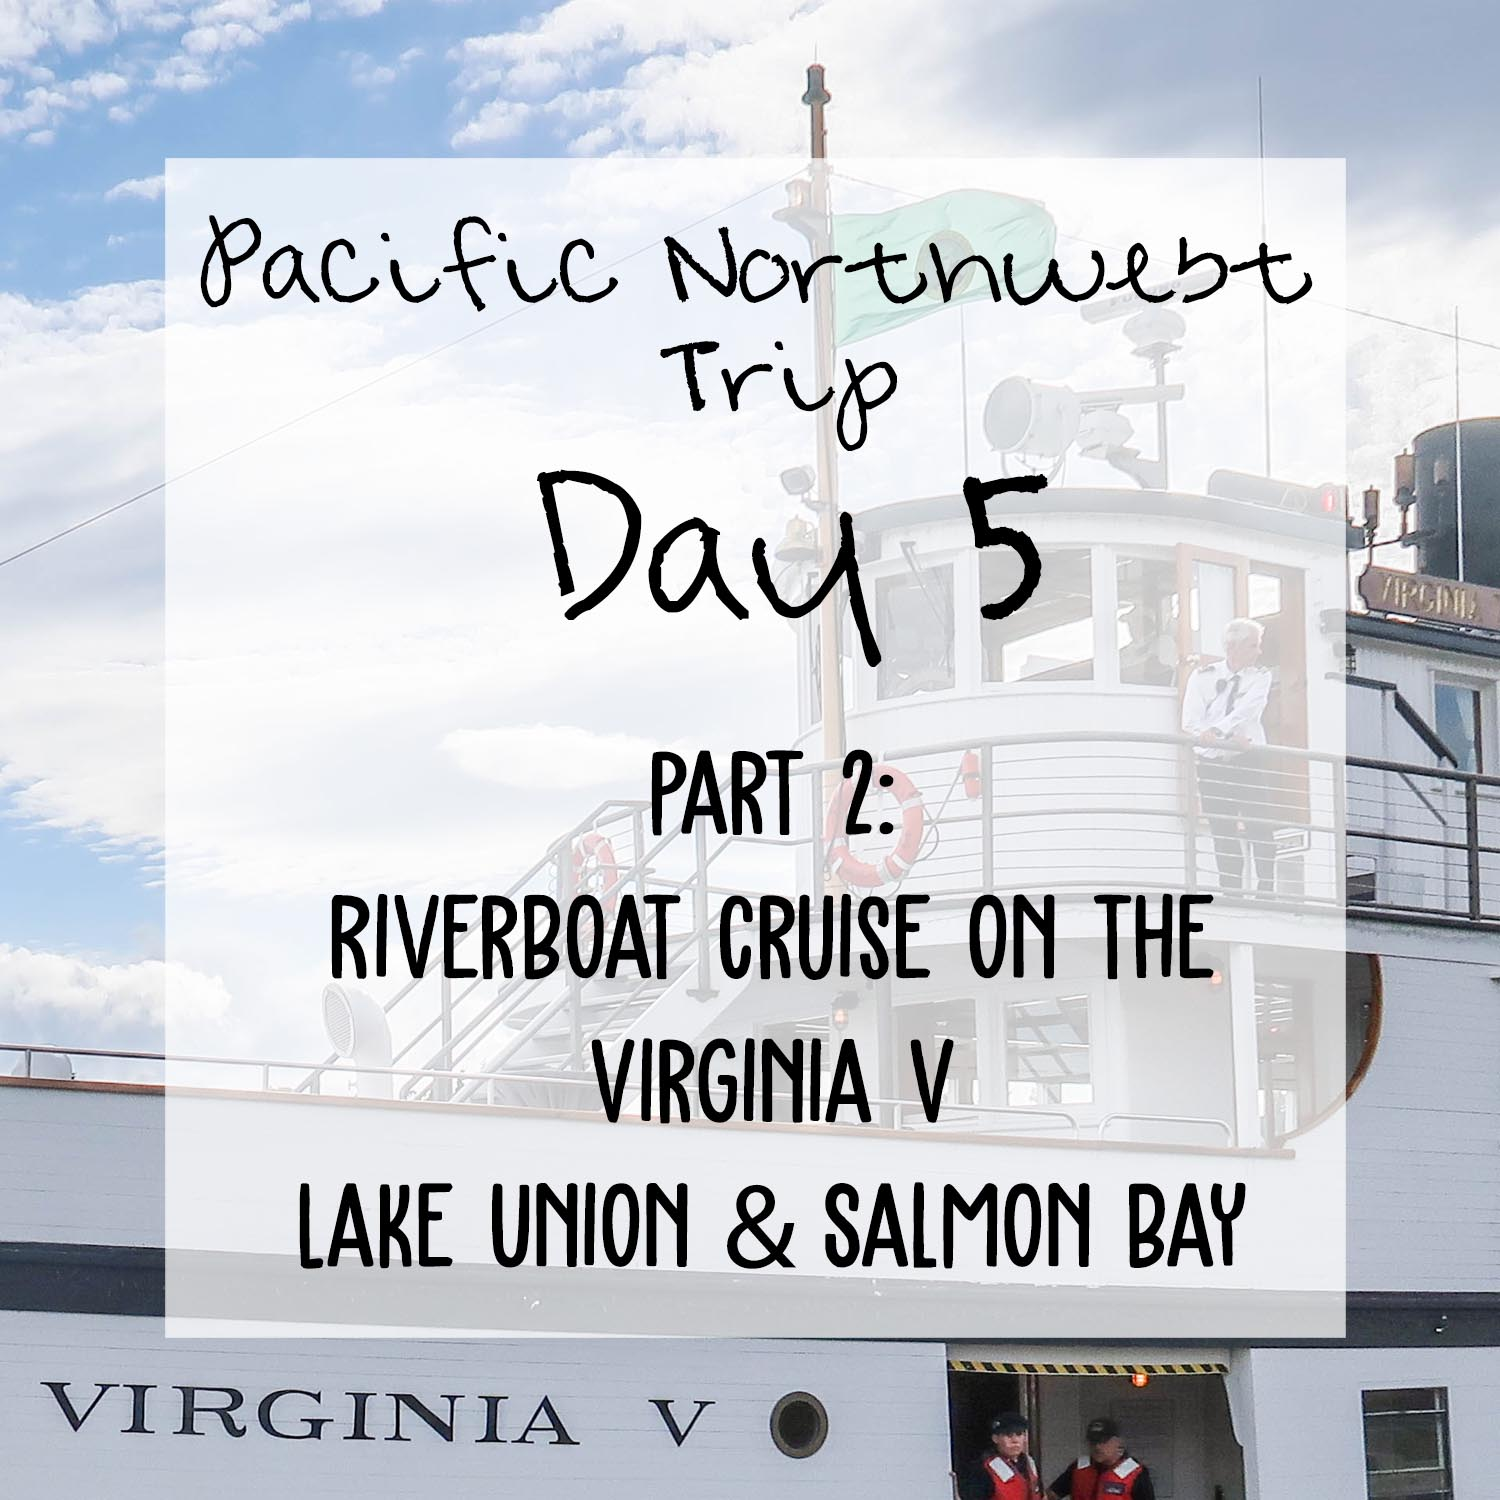 Pacific NW Trip: Day 5 - Part 2